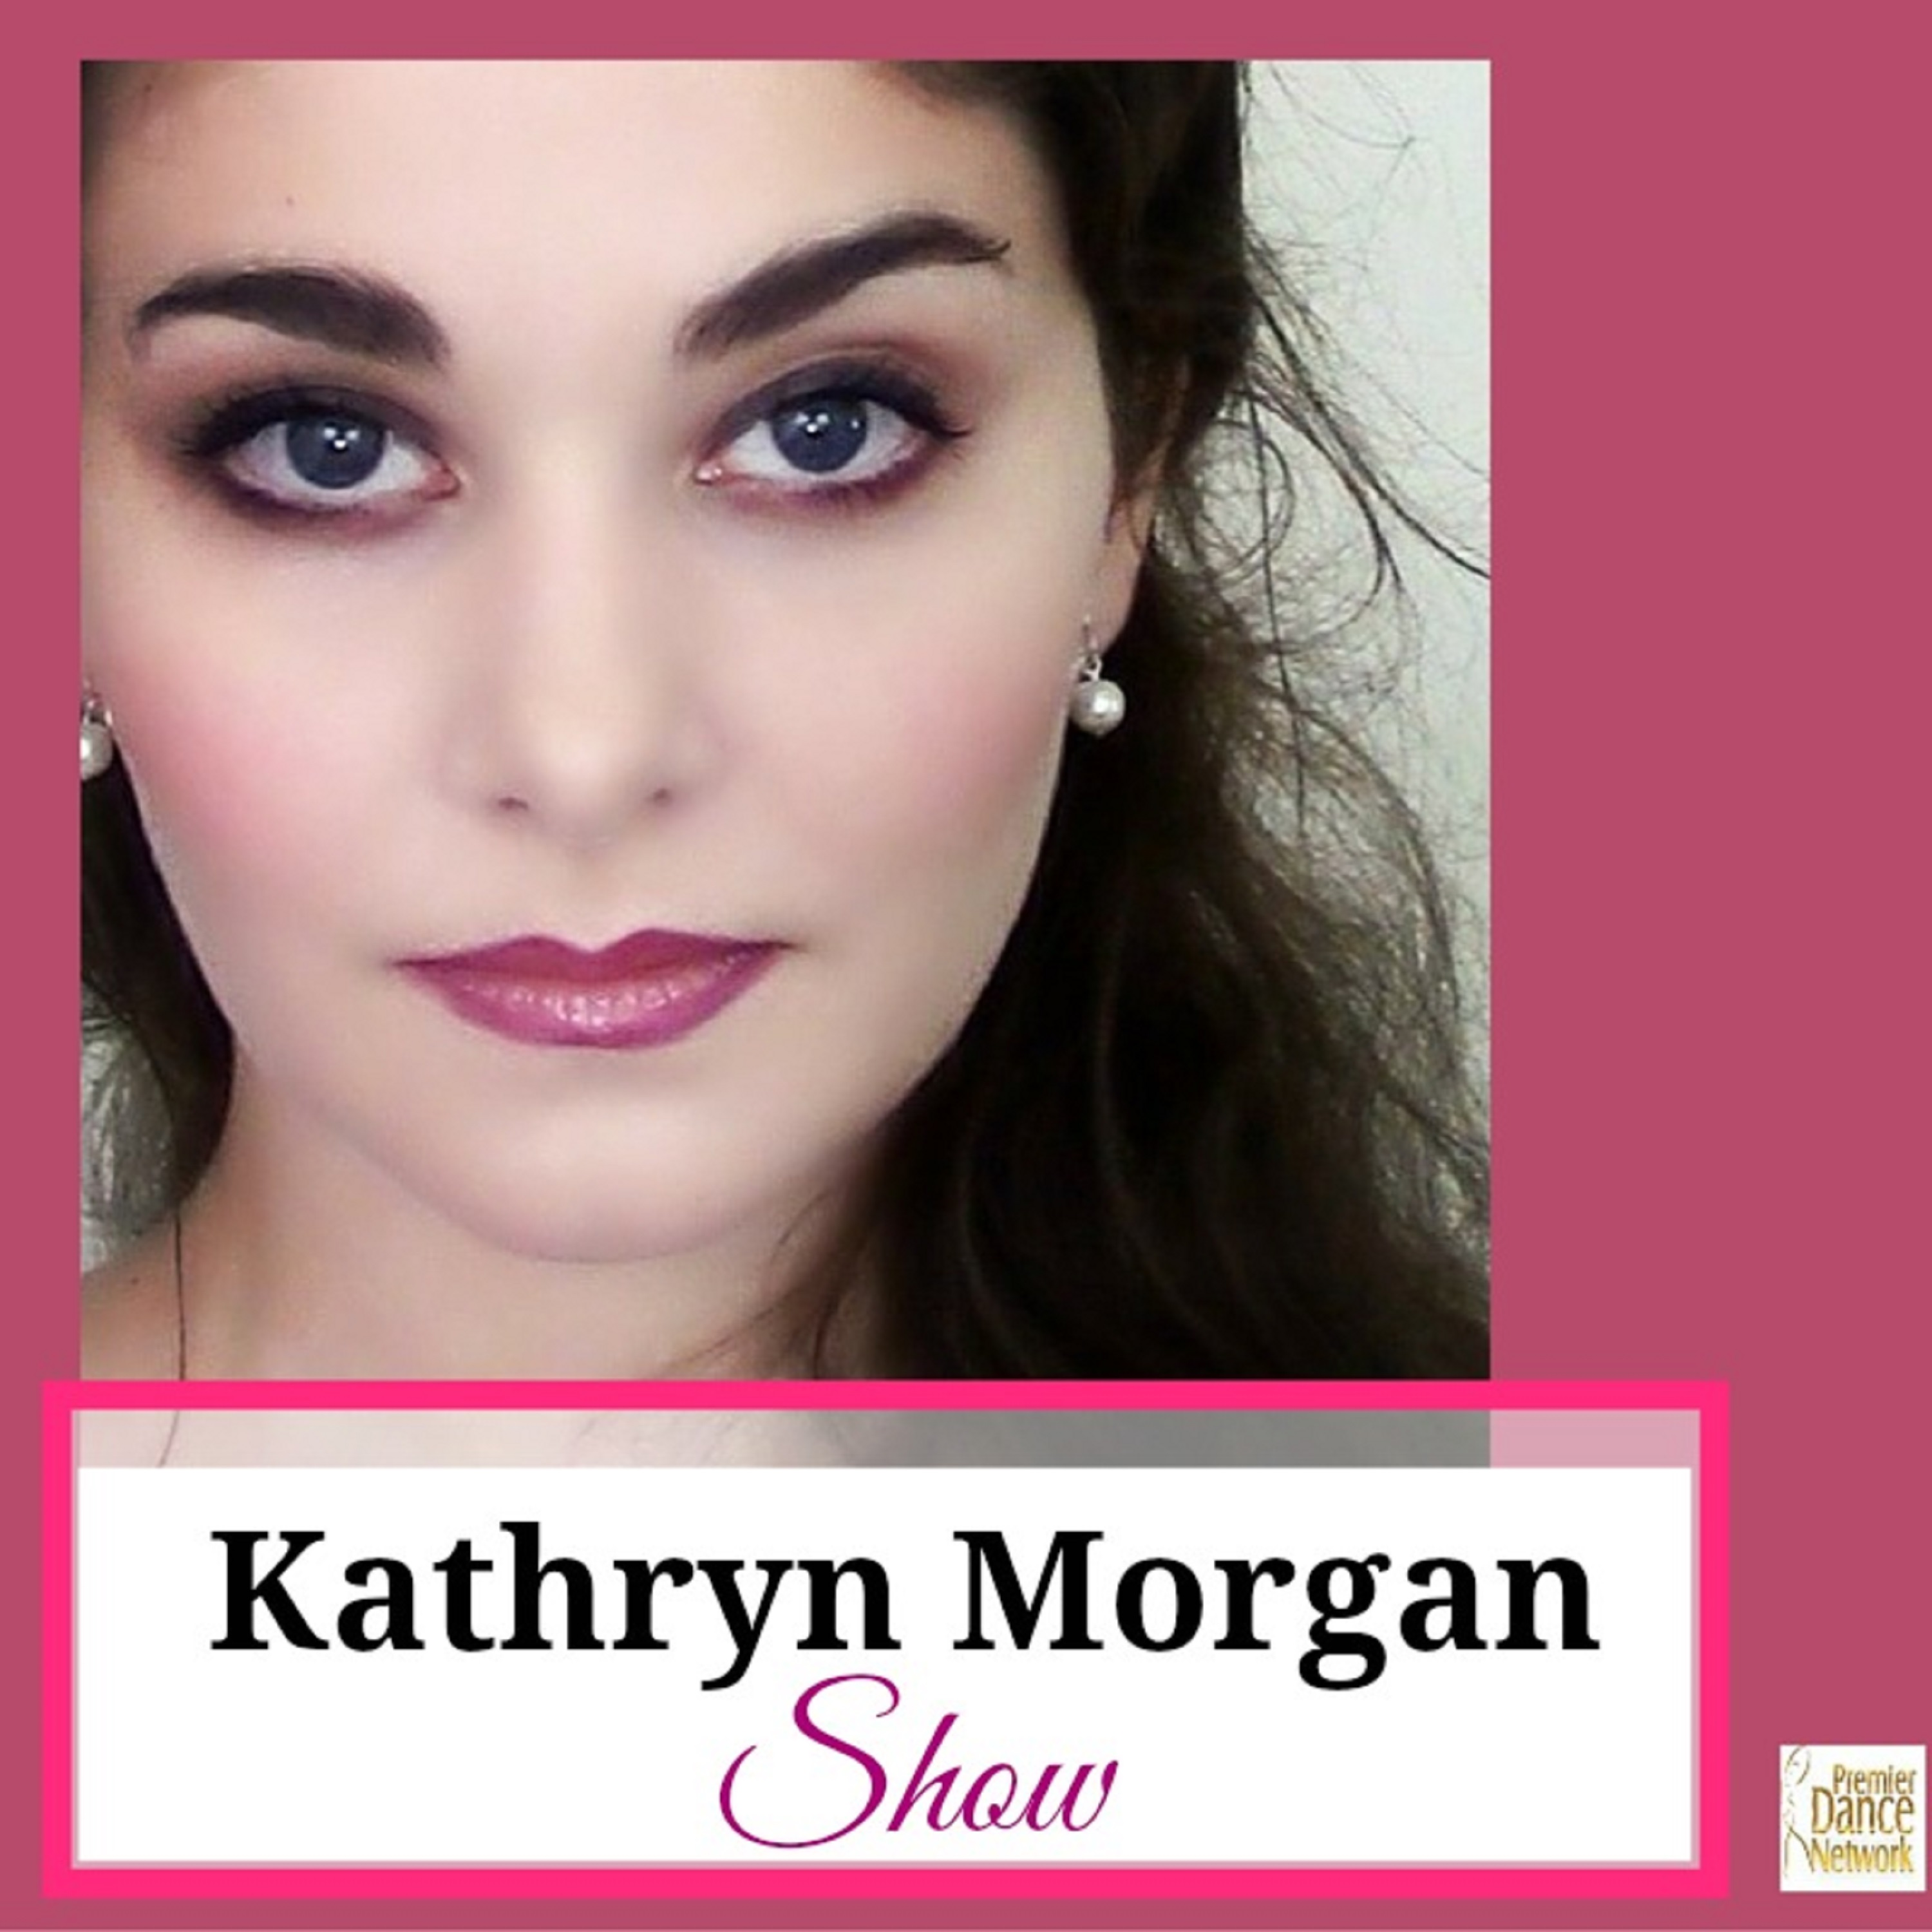 The Kathryn Morgan Show